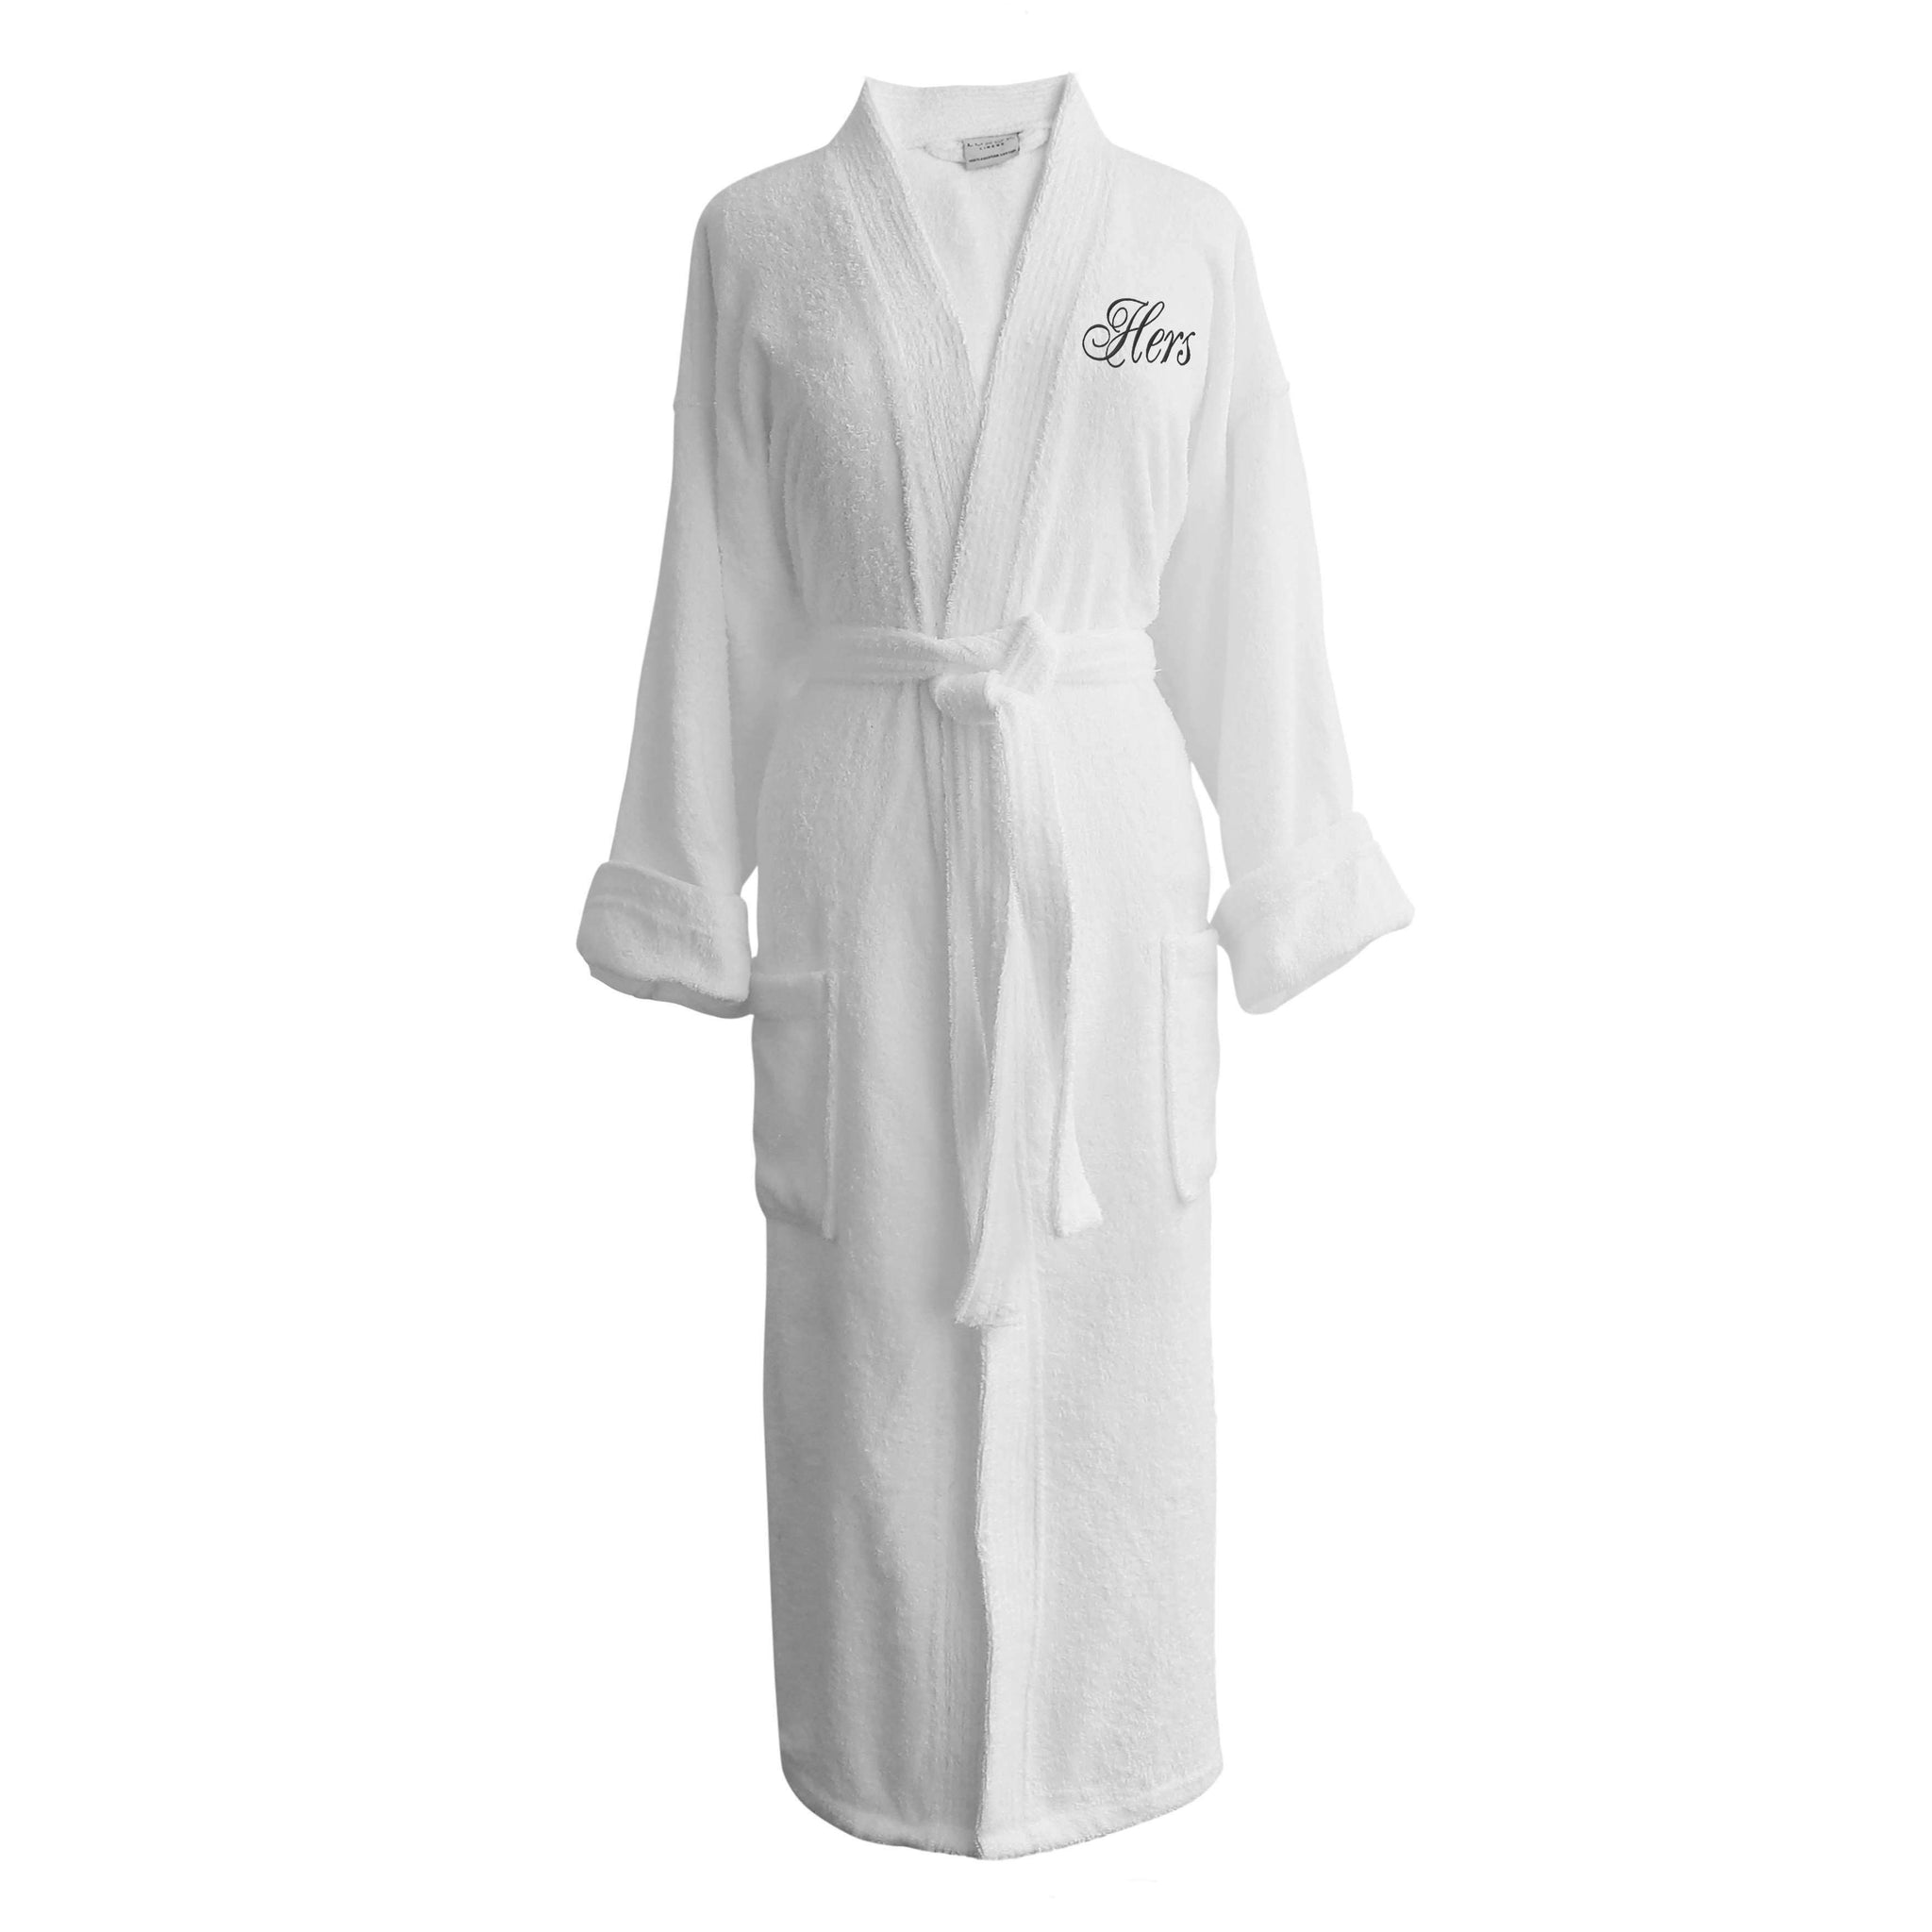 Luxor Linens Lakeview Signature Egyptian Cotton Terry Spa Robes - Luxor  Linens c515c6e3a